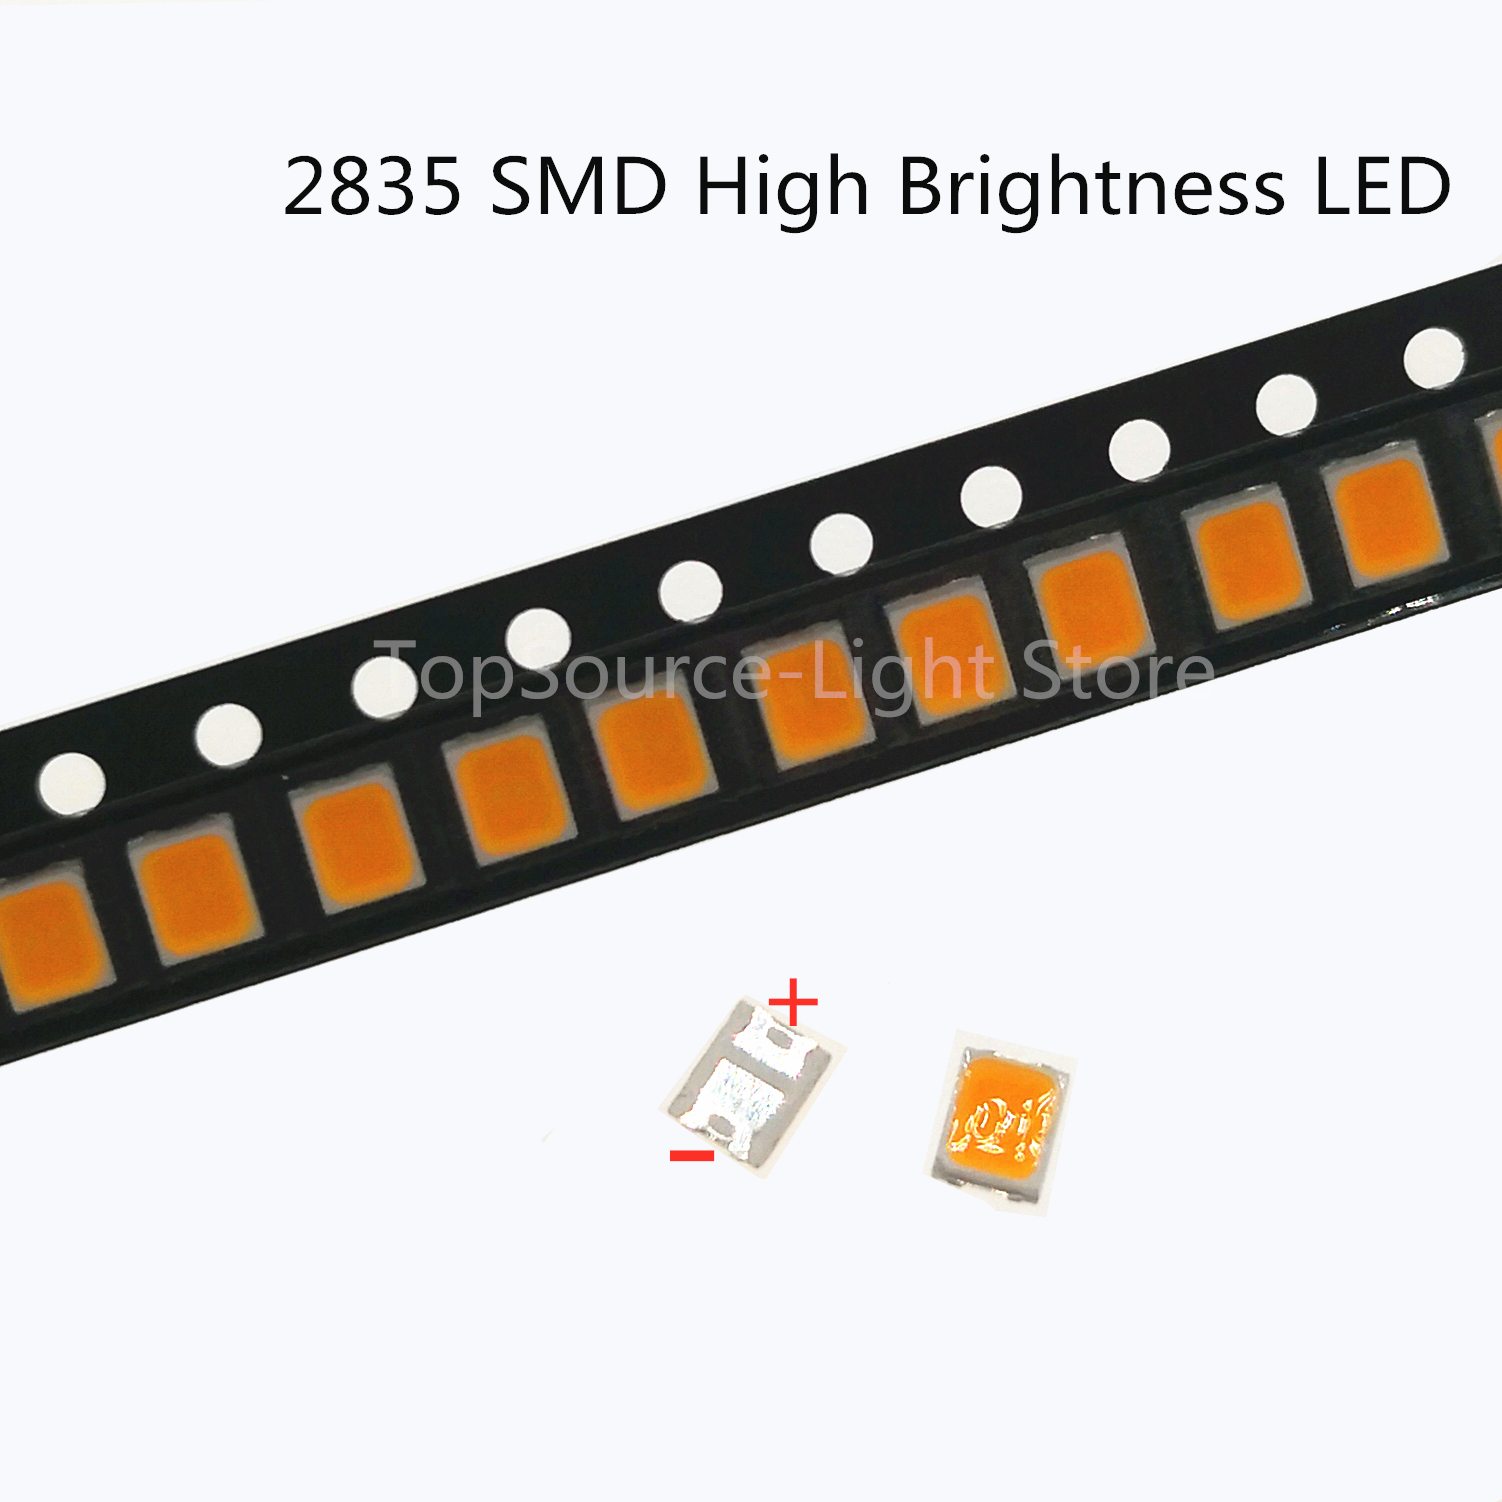 100Pcs <font><b>SMD</b></font> LED <font><b>2835</b></font> Chips 1W 3V 6V 9V 18V 36V beads light White 2700K 4000K <font><b>6000K</b></font> 9500k 1W 130LM Surface Mount PCB Light Lamp image